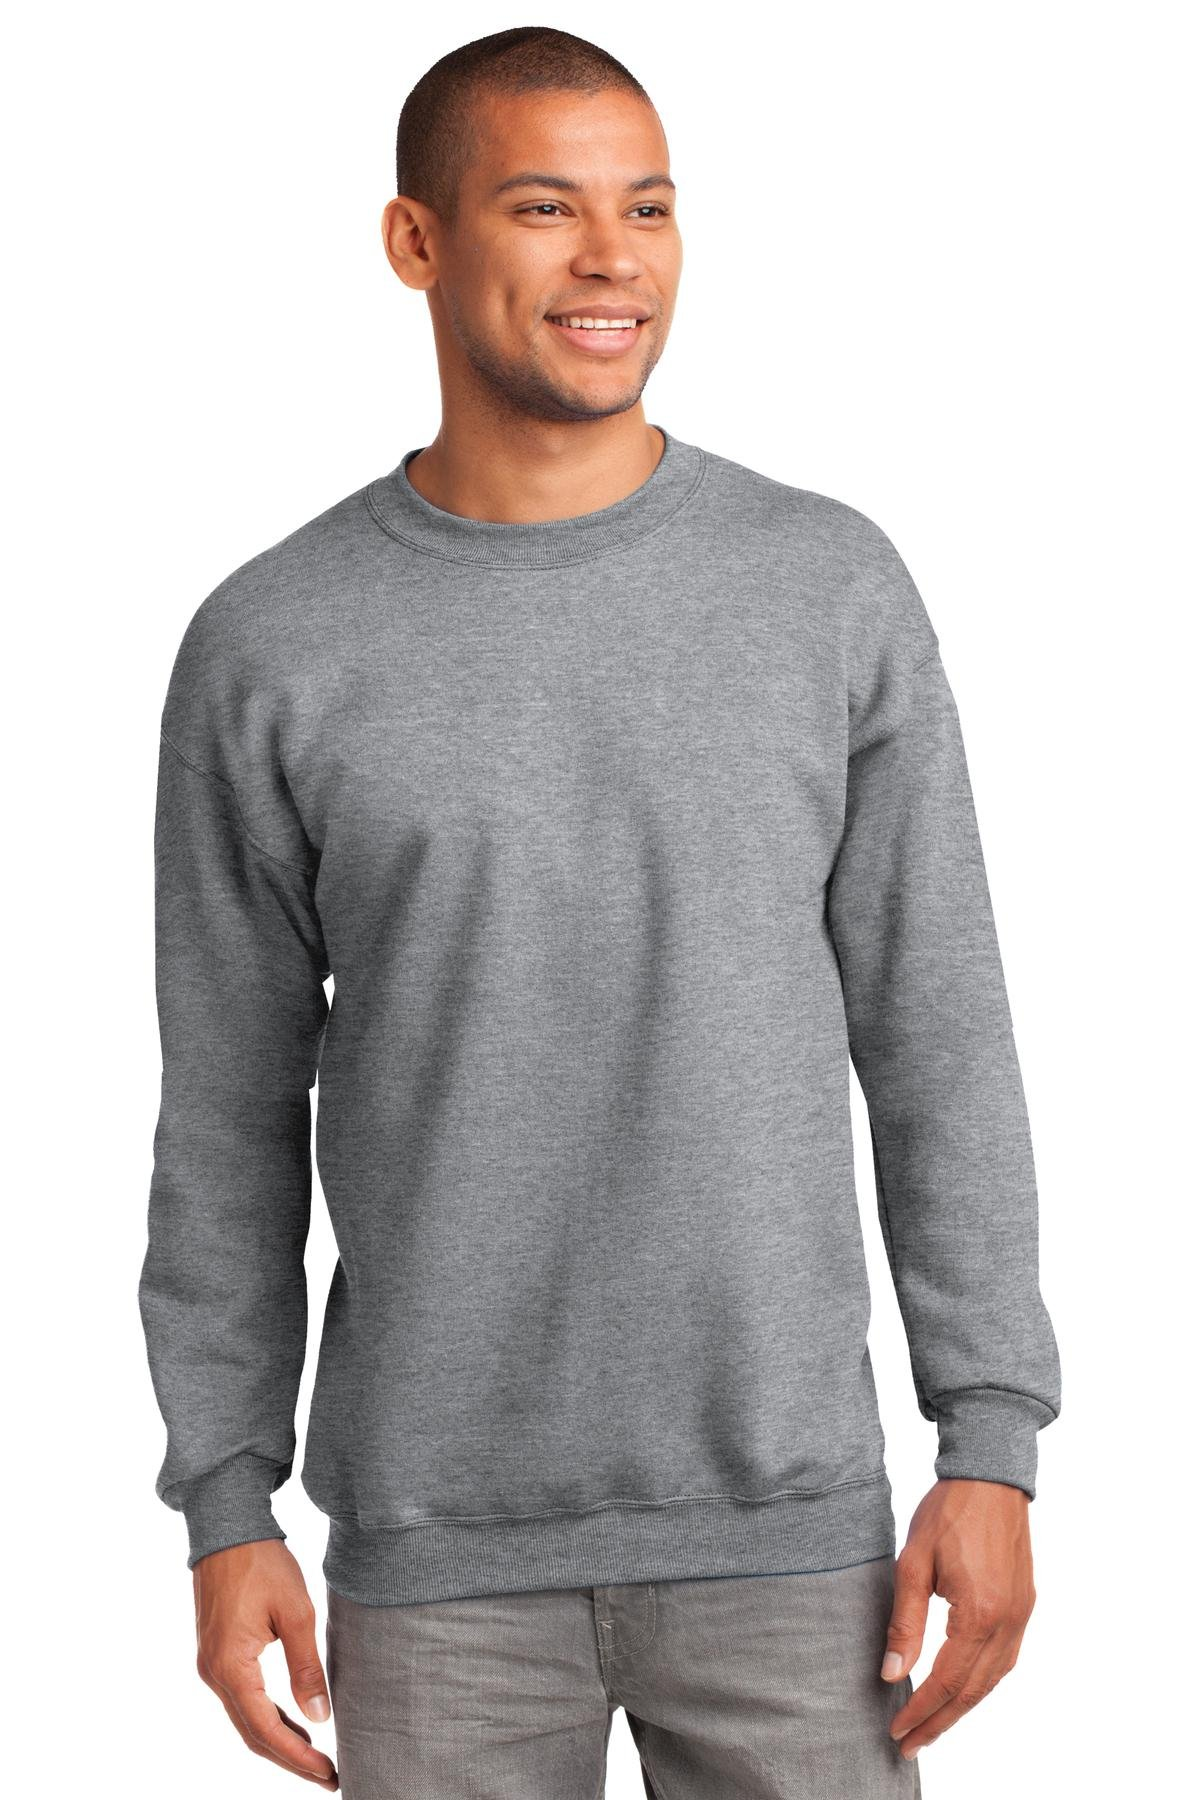 Port & Company Mens Tall Ultimate Crewneck Sweatshirt, Athletic Heather, Large Tall